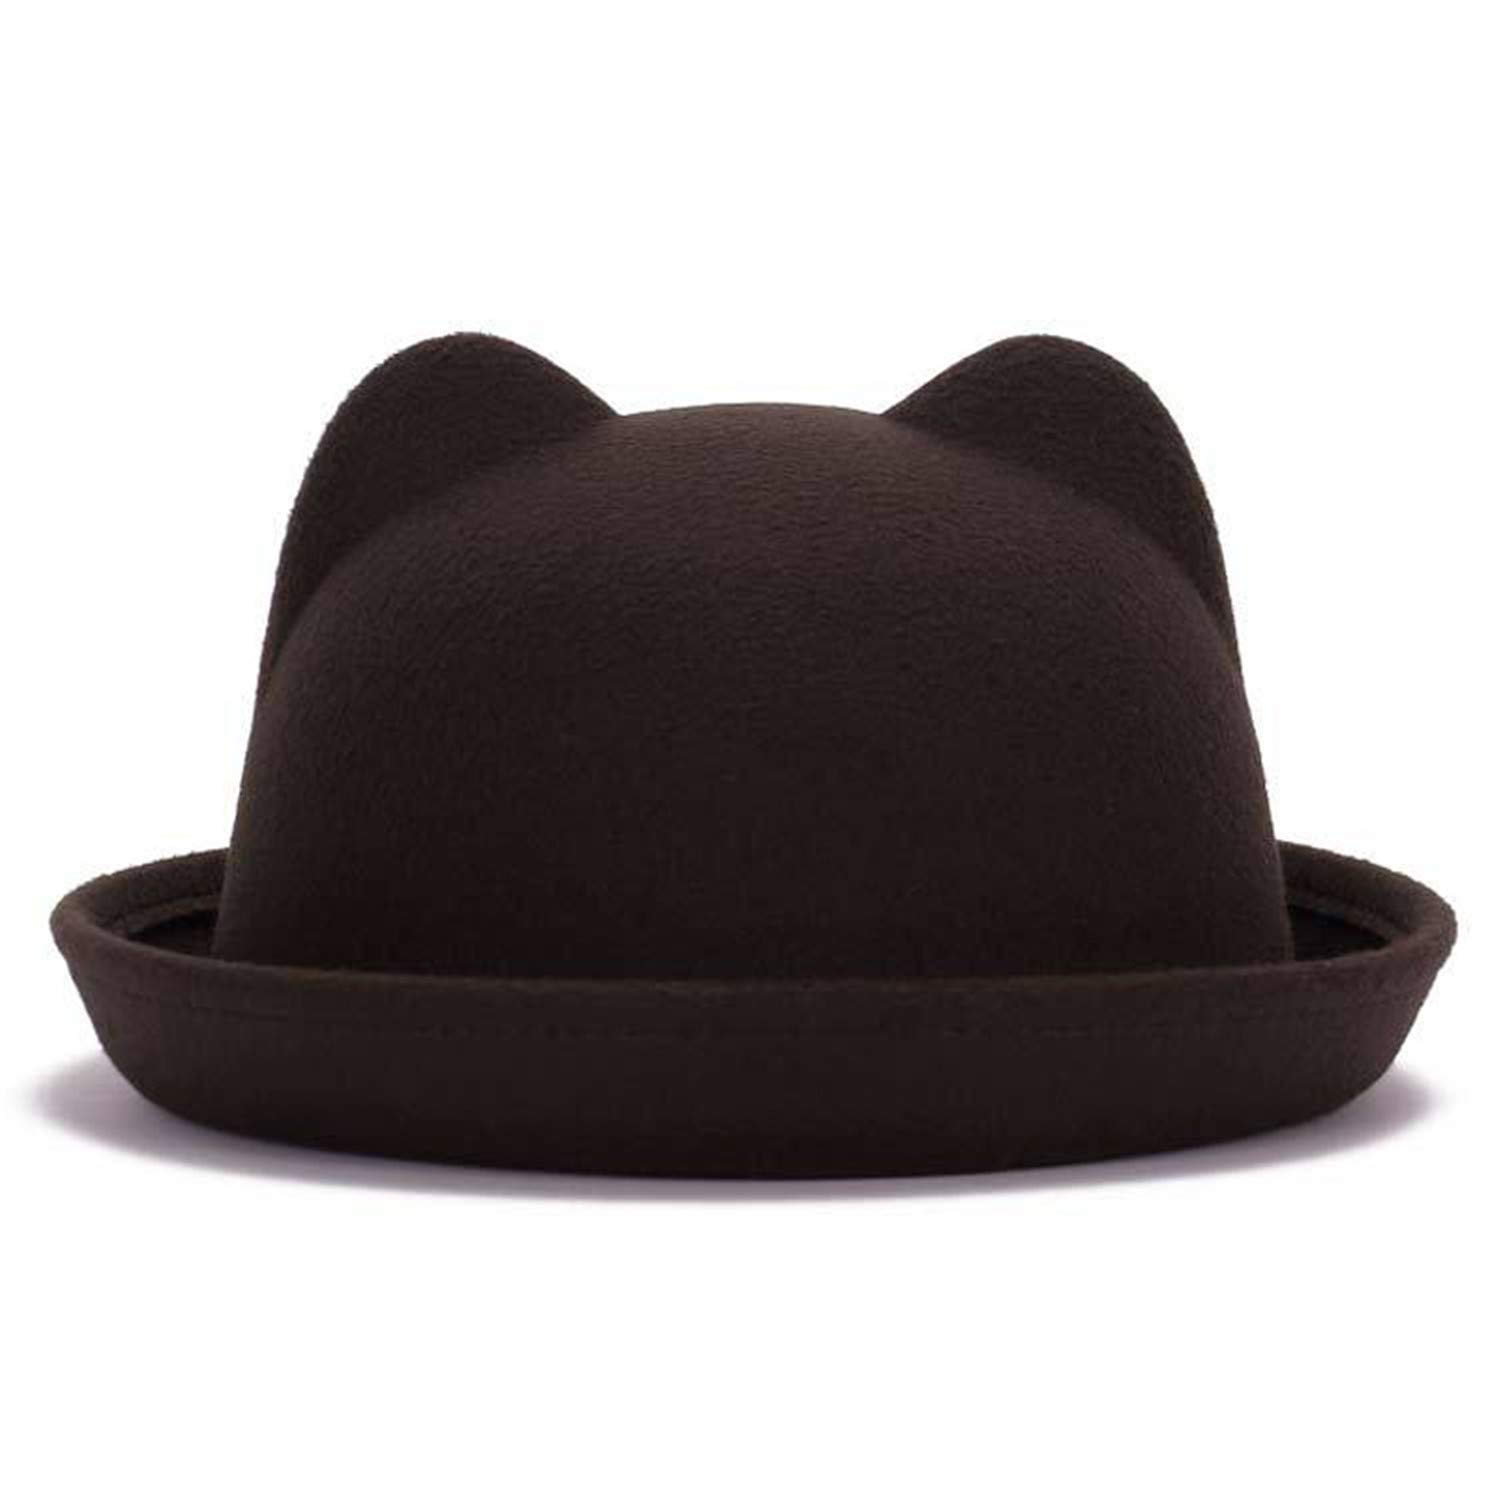 Women fedoras dome hats wool warm soft stingy brim bucket cat ears hat  brown at amazon 73d1f0f0f21b